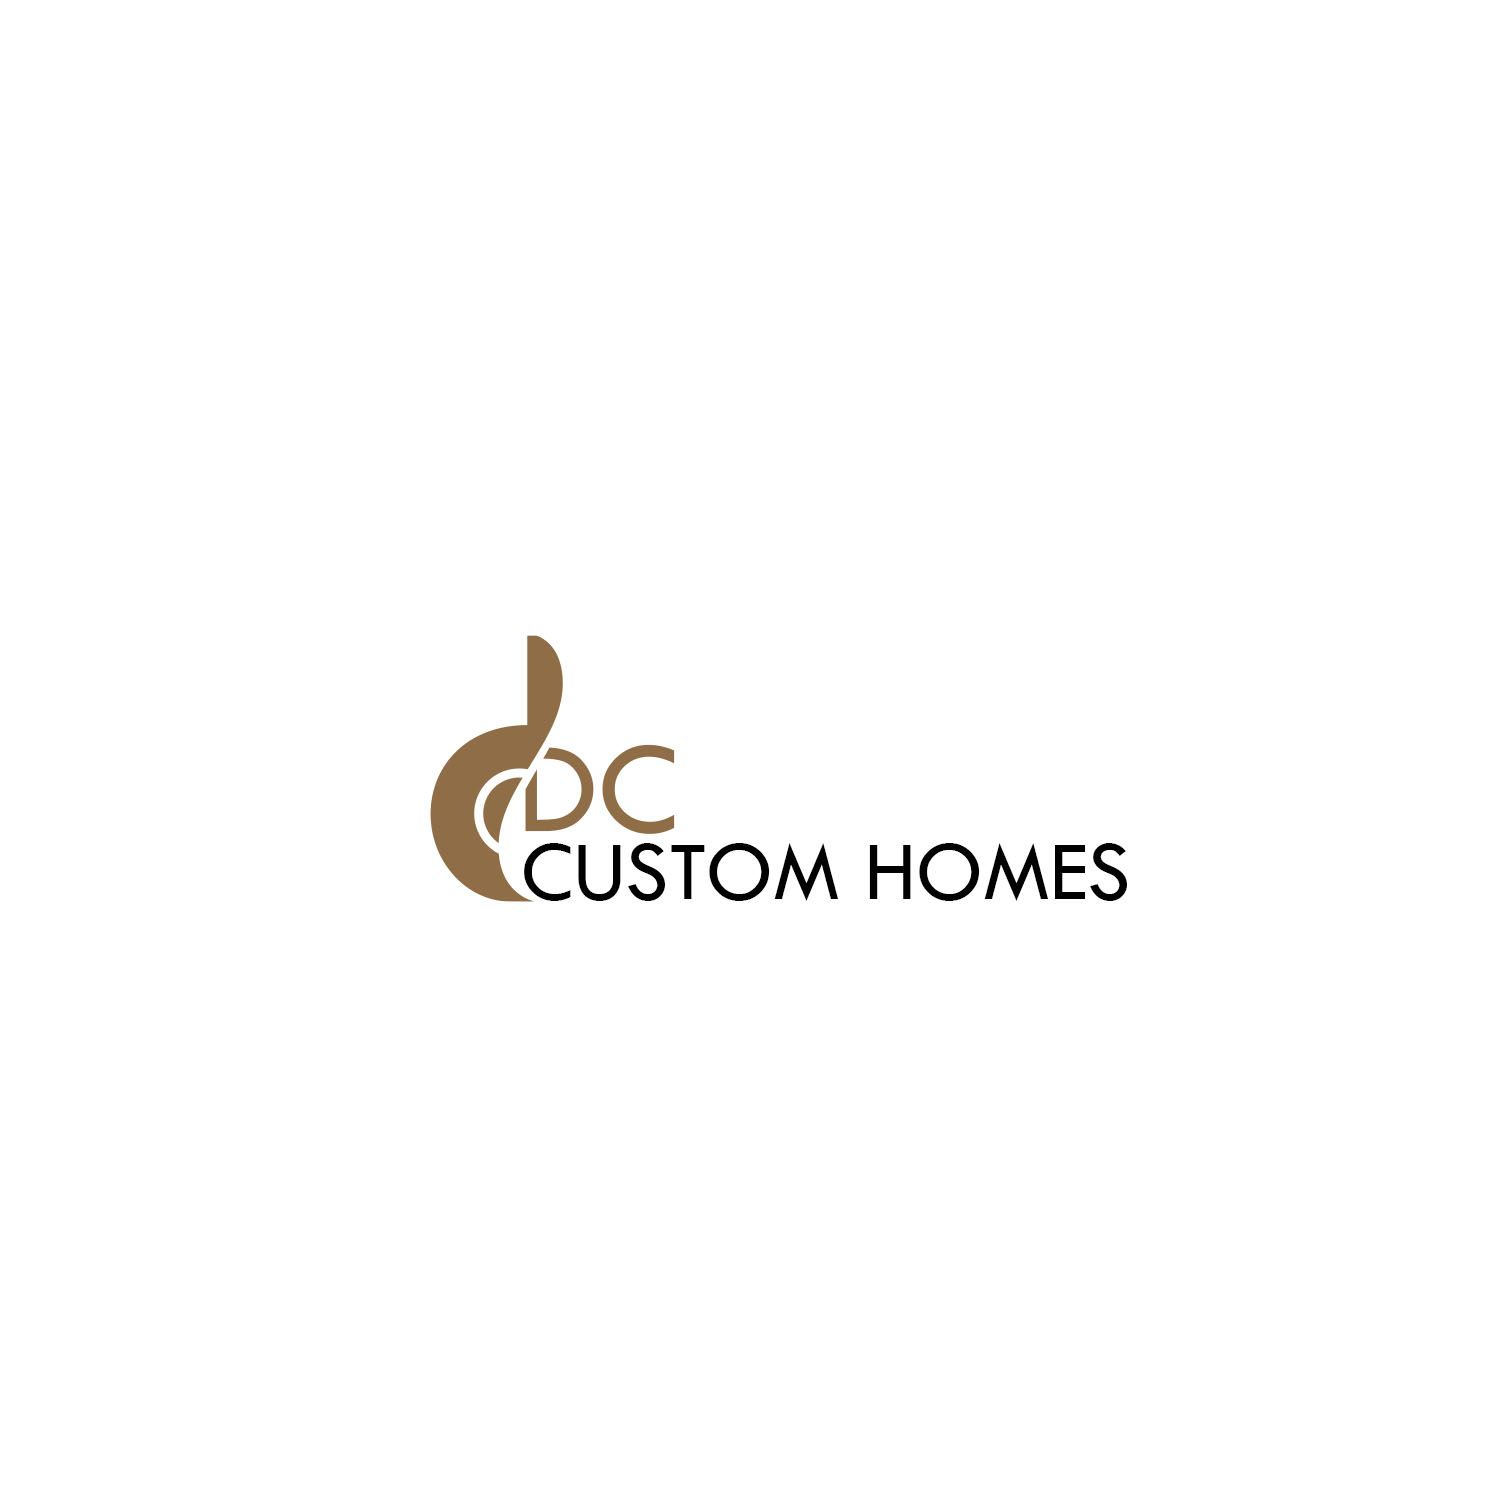 Logo Design by Private User - Entry No. 149 in the Logo Design Contest Creative Logo Design for DC Custom Homes.